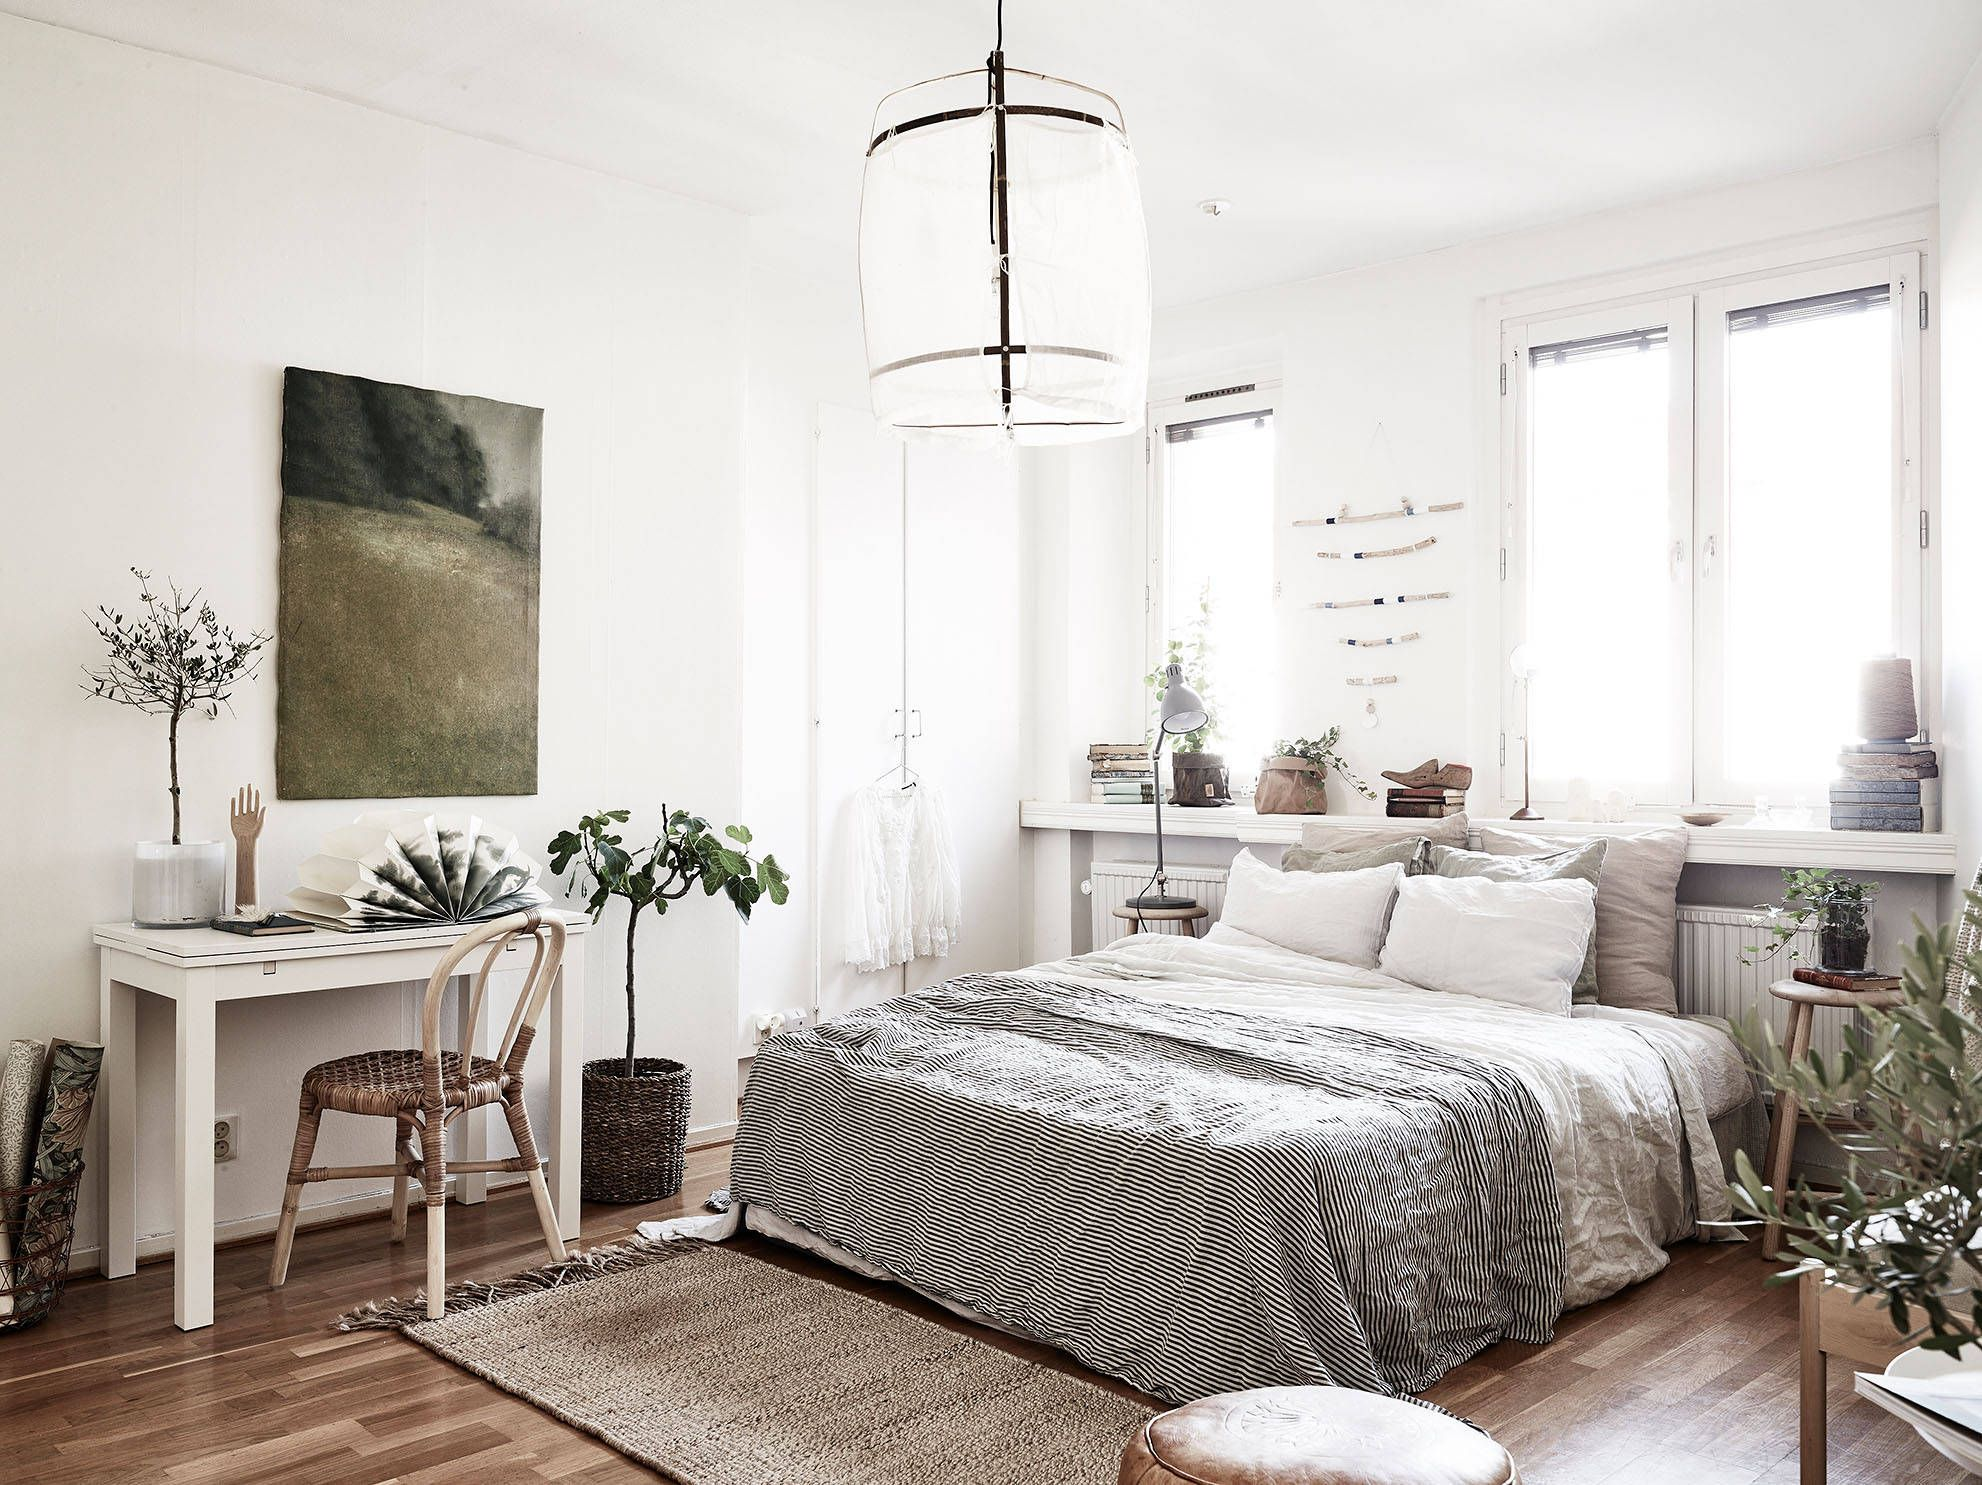 Uber Dreamy Tiny Studio Apartment Daily Dream Decor